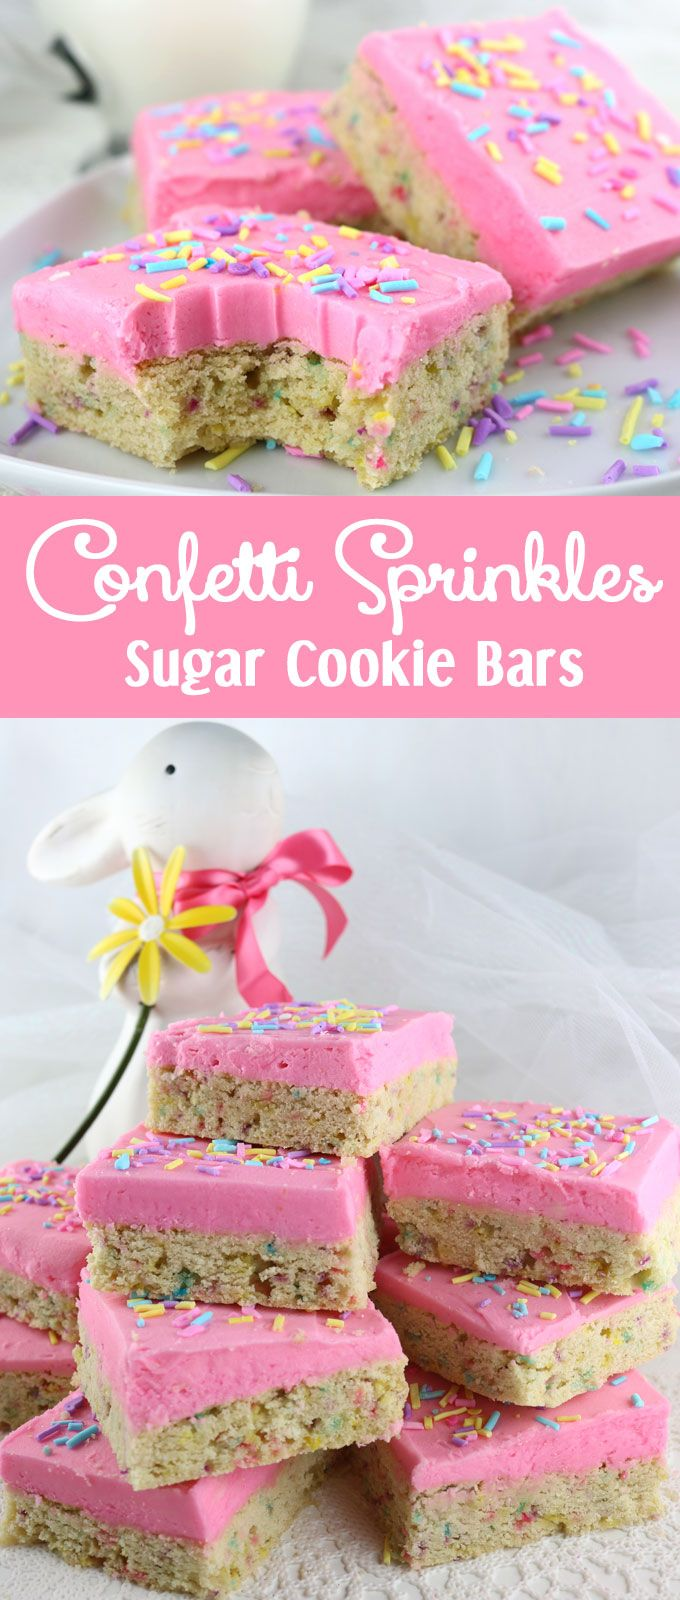 on a Frosted Sugar Cookie, these Confetti Sprinkles Sugar Cookie Bars ...